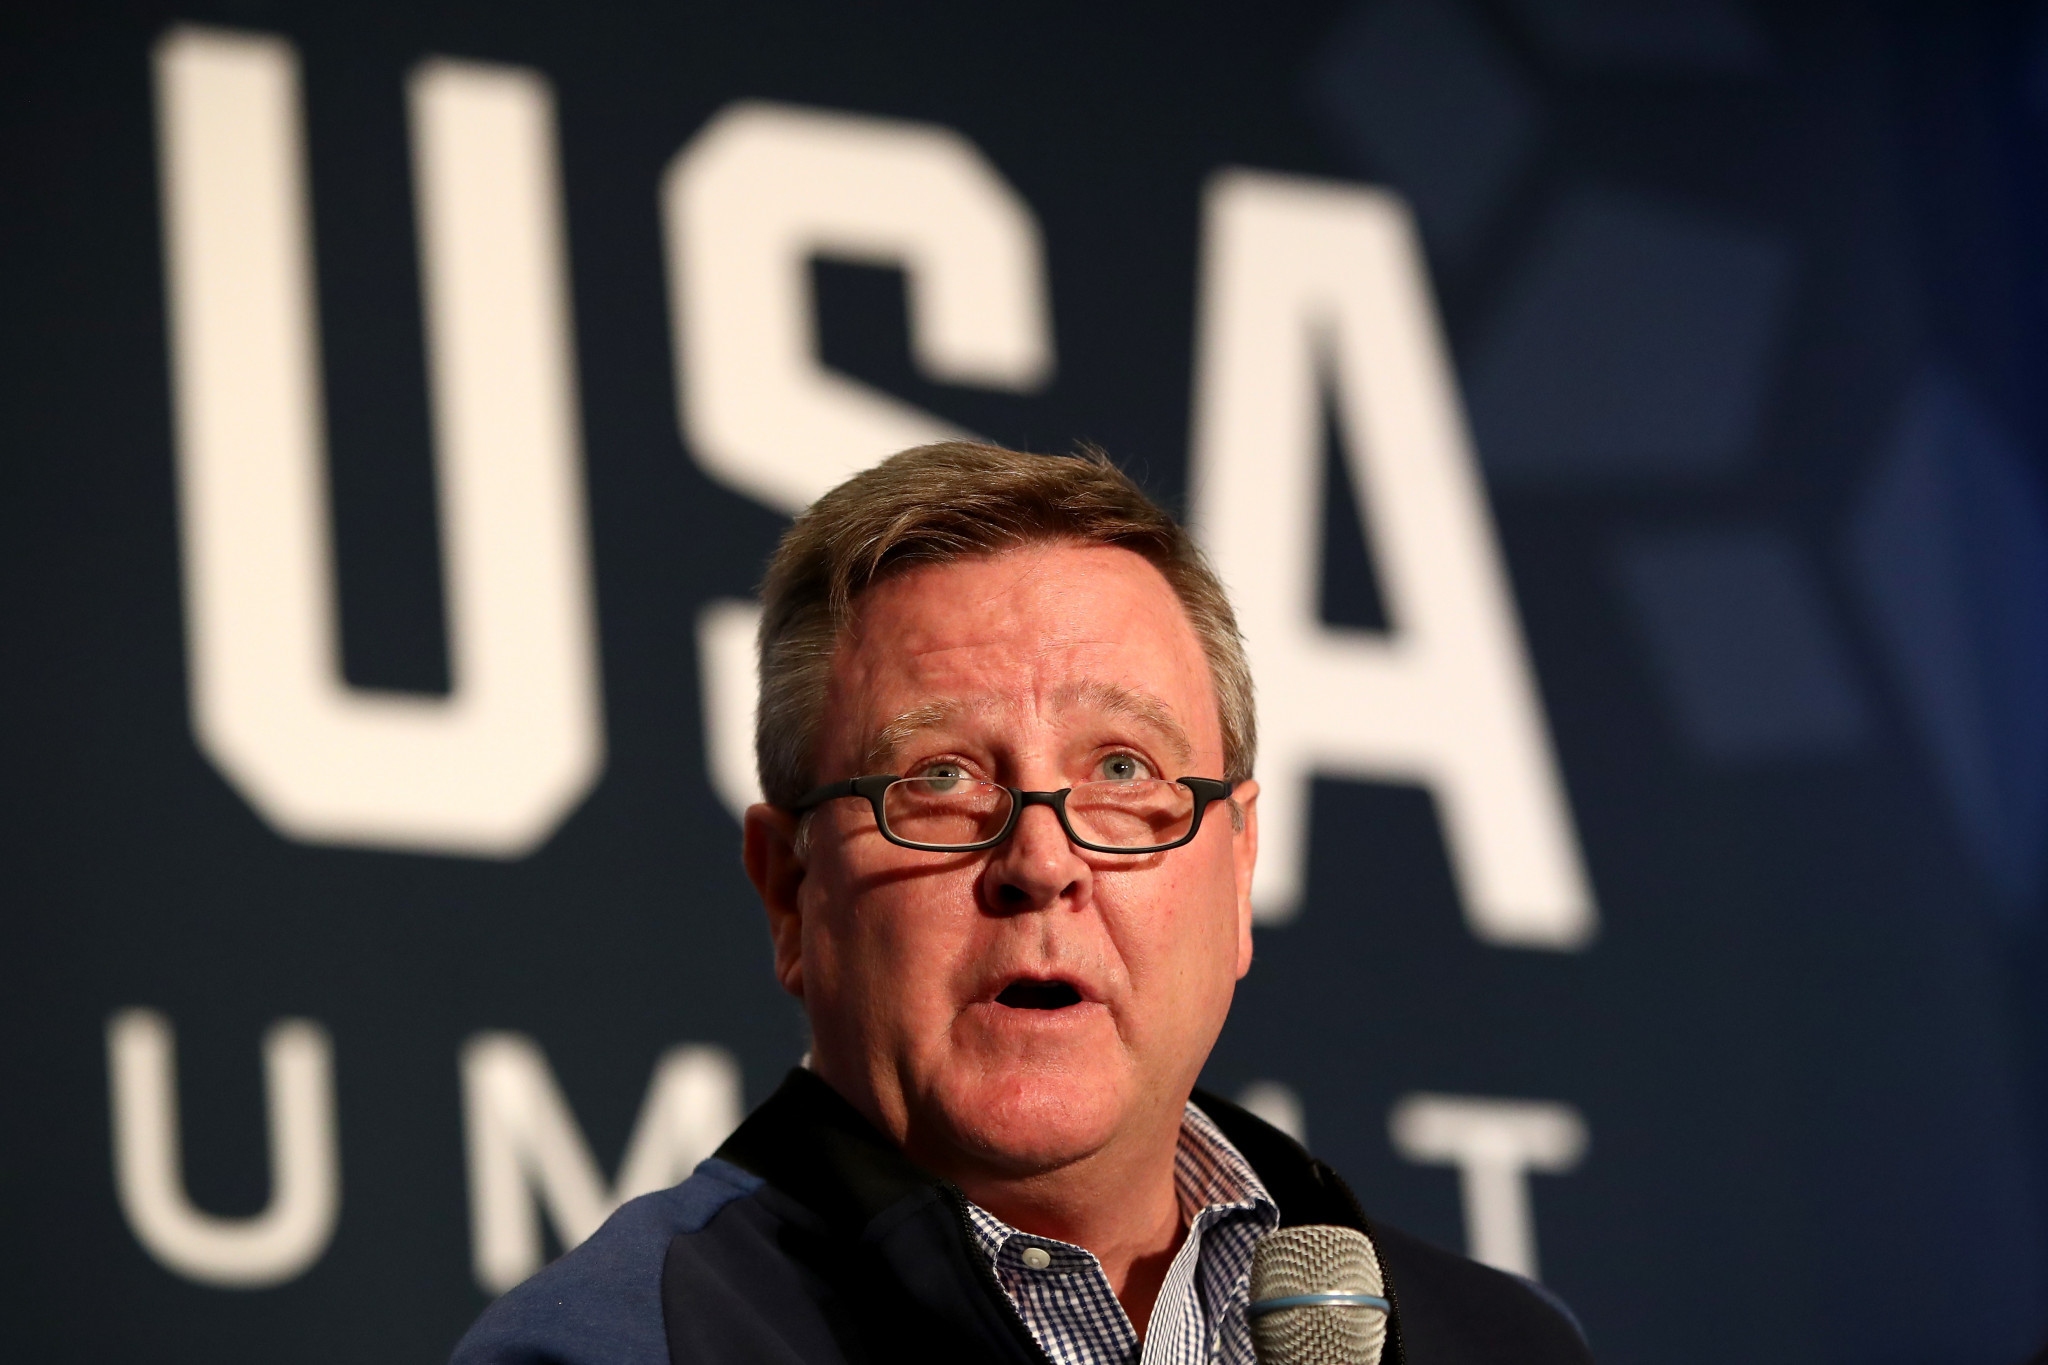 Former USOC chief executive Scott Blackmun has reportedly been referred to the FBI by Senators ©Getty Images